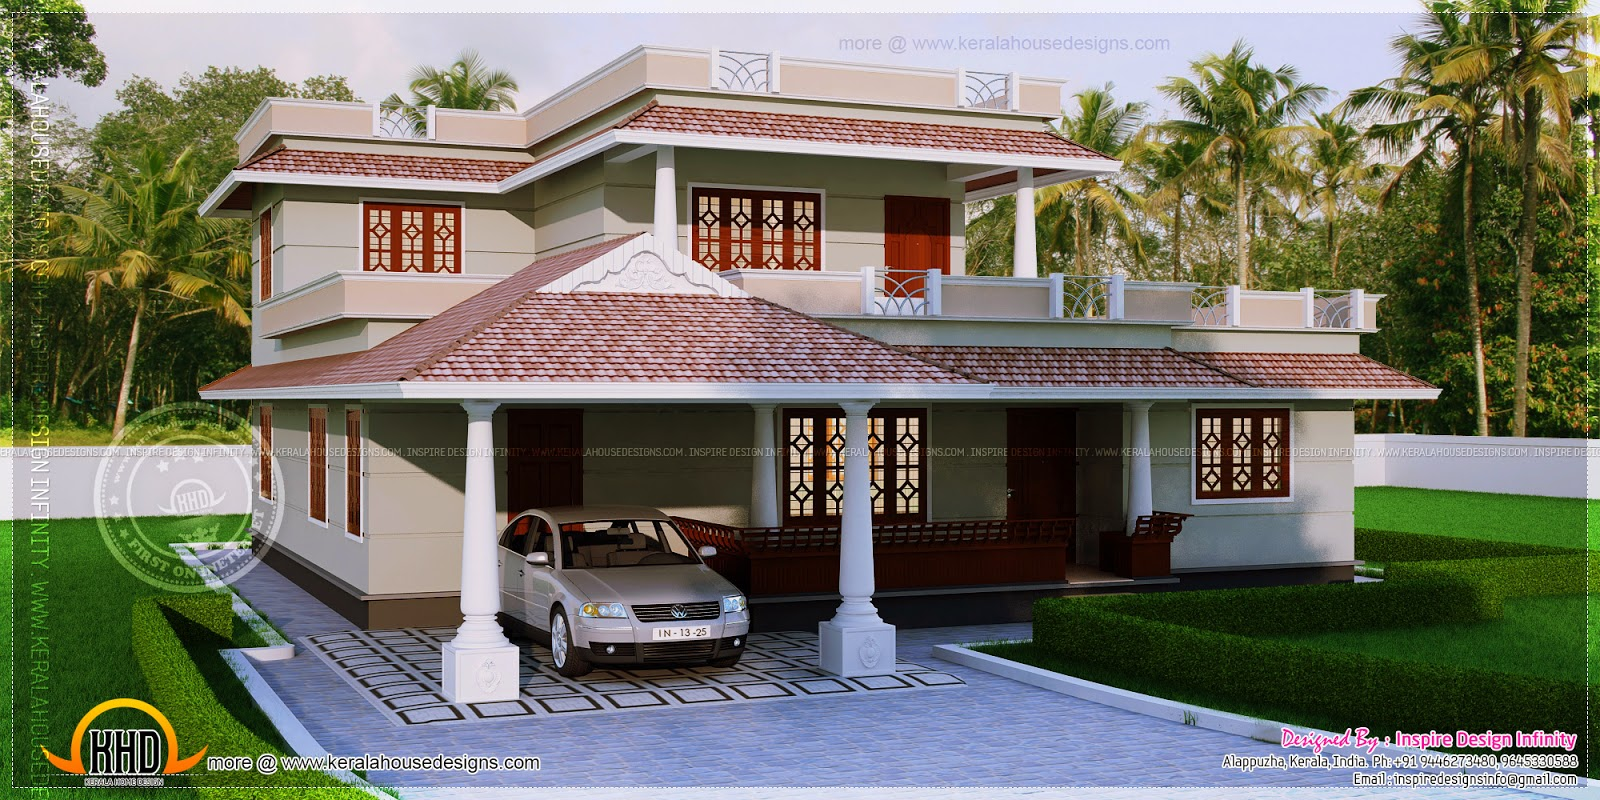 4 bedroom kerala style house in 300 square yards   kerala